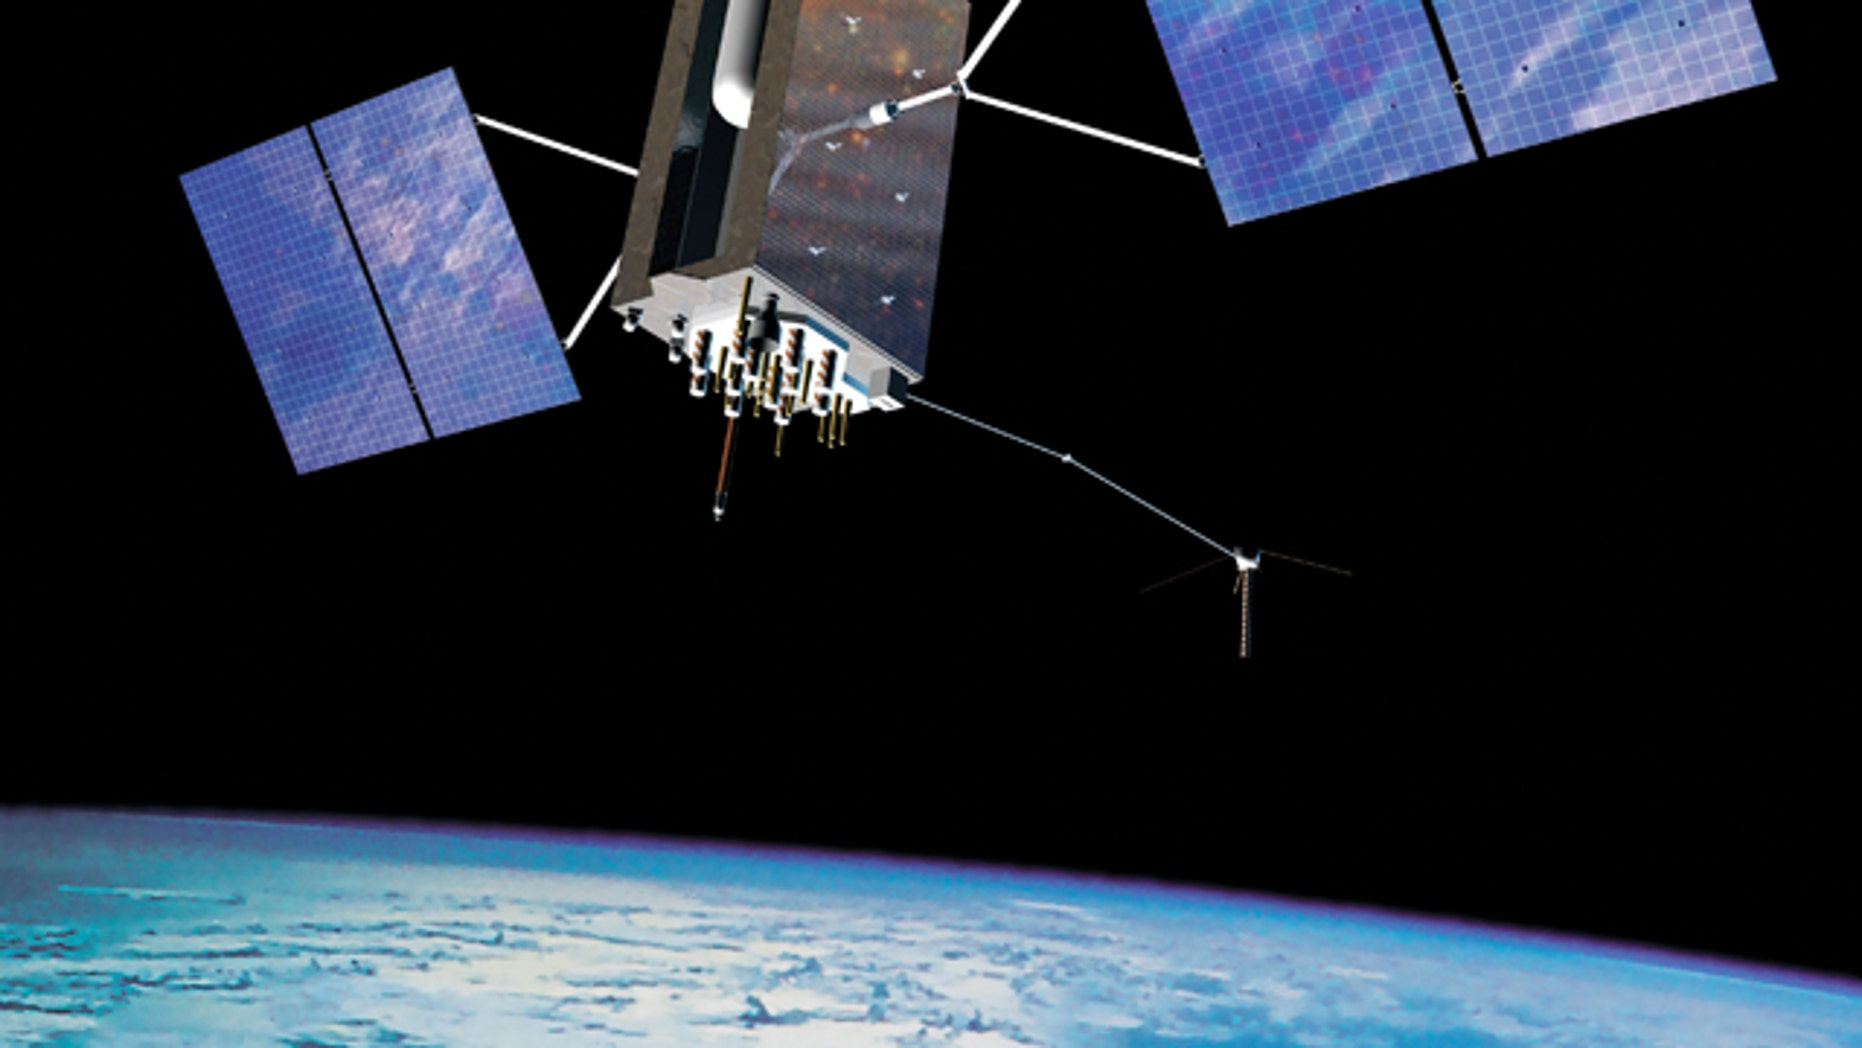 An illustration of a GPS satellite, silenting orbiting the Earth.